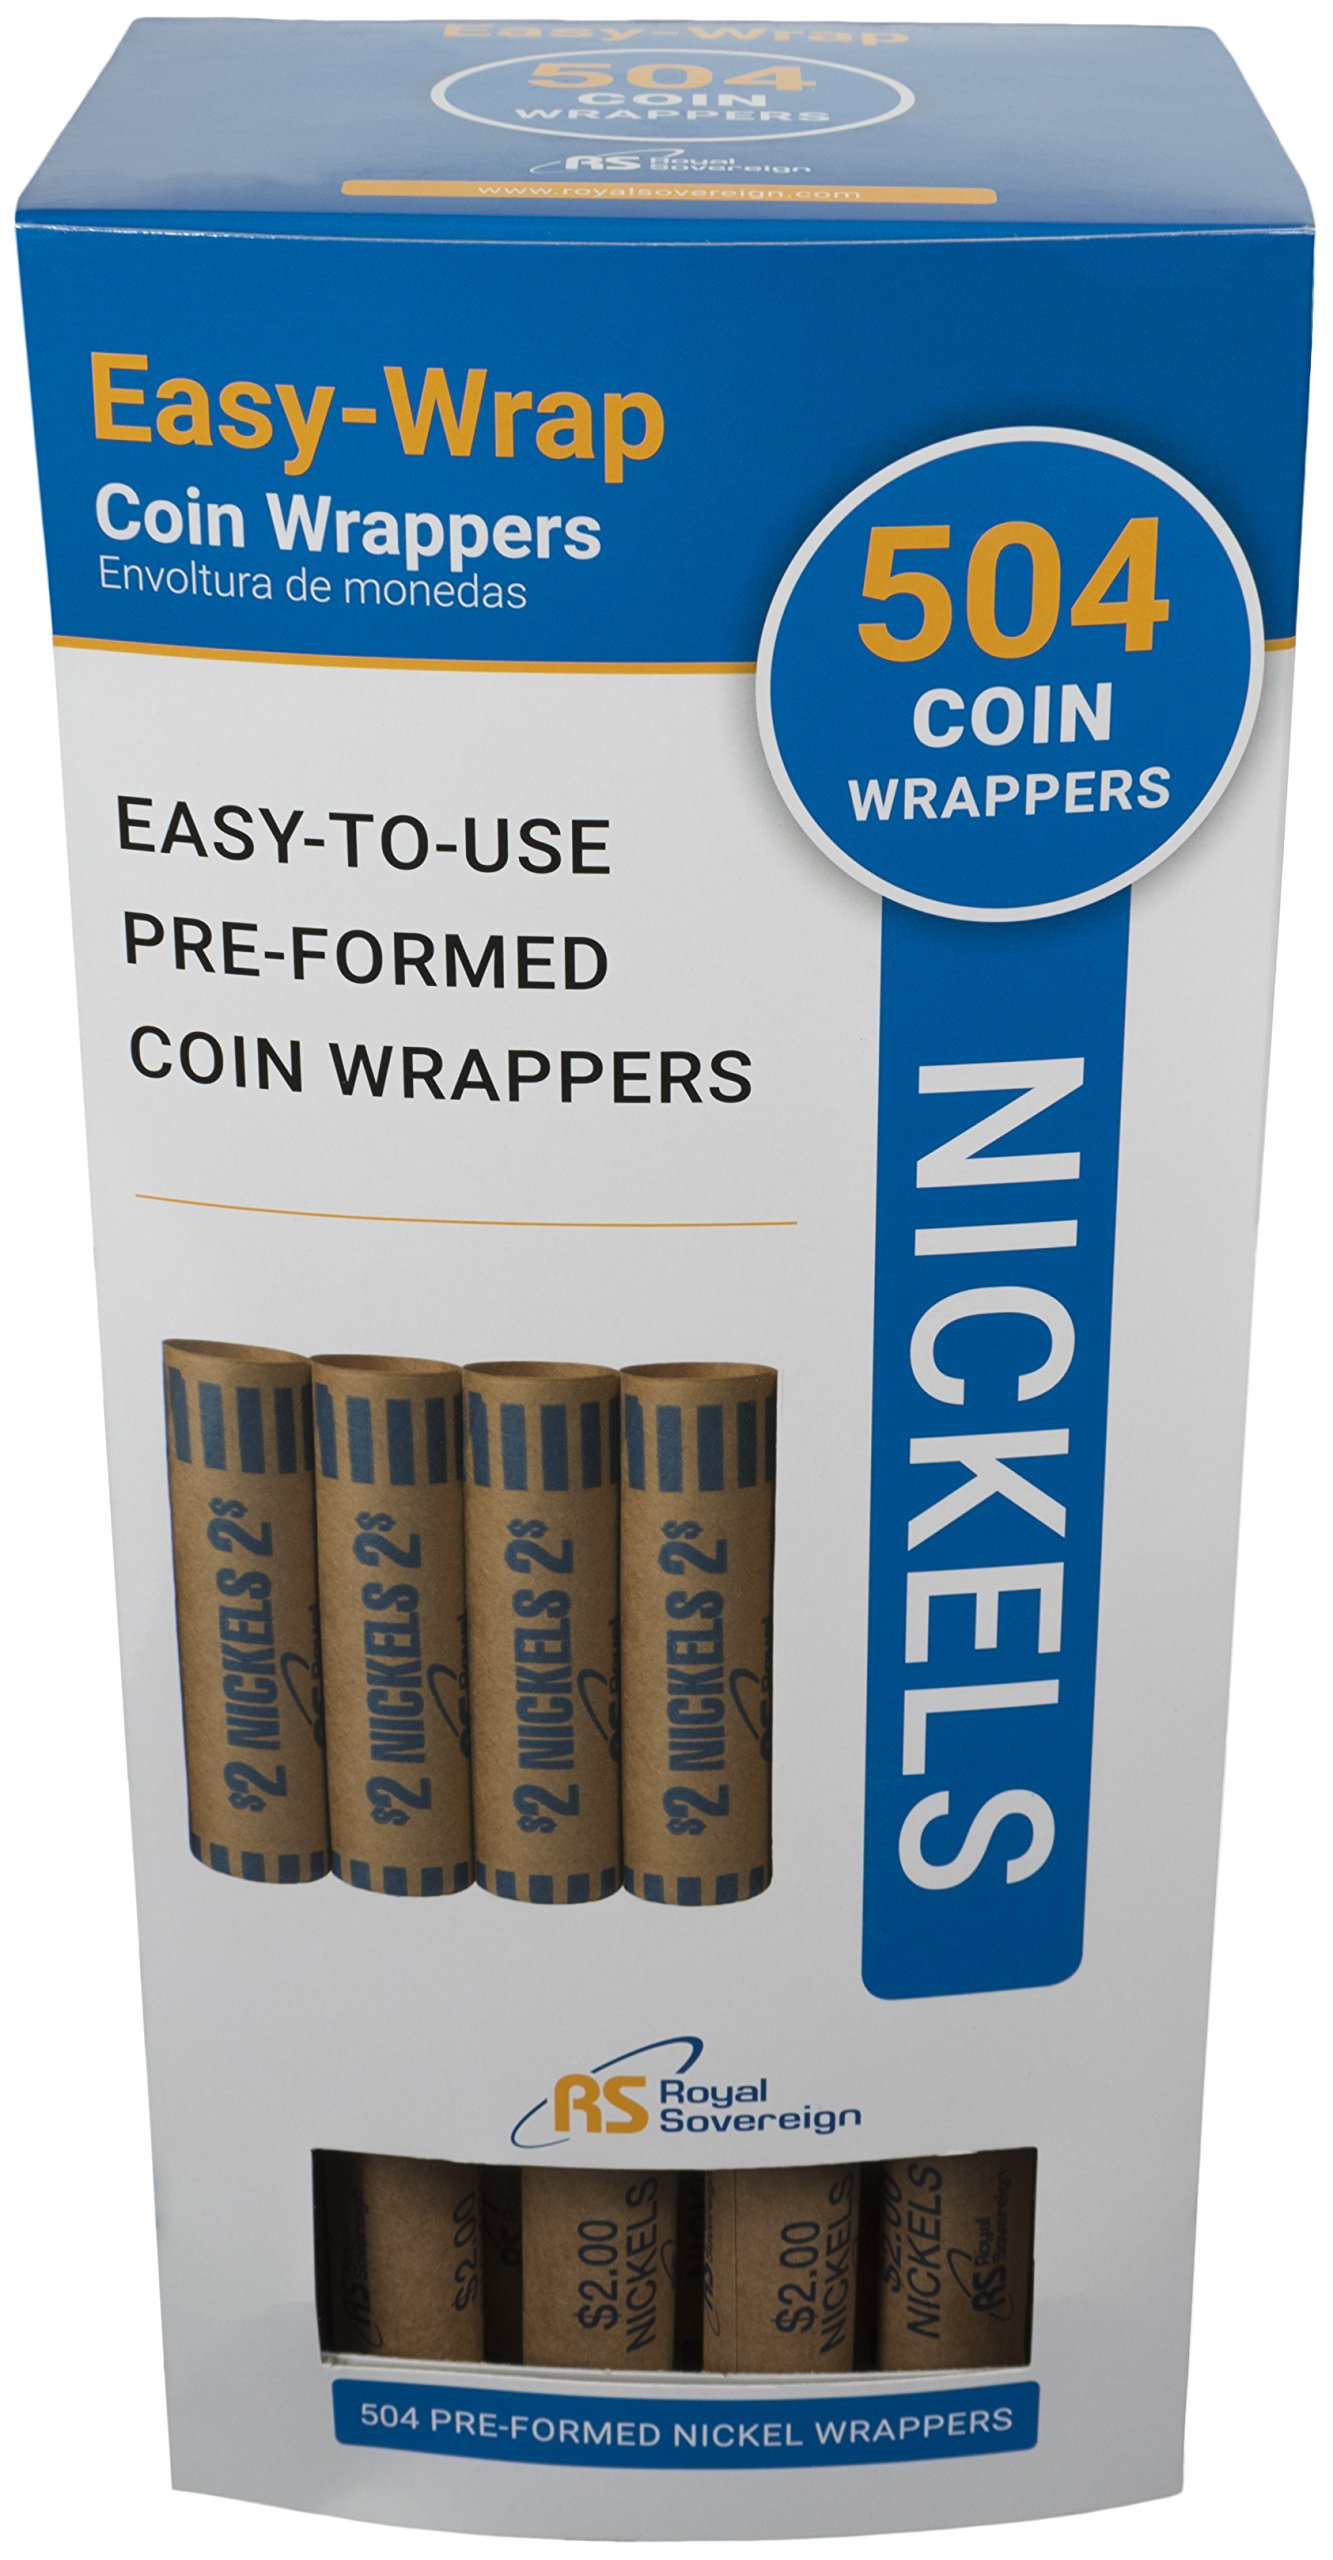 Royal Sovereign Preformed Coin Wrappers, 504 Nickel Coin Wrappers (FSW-504N)